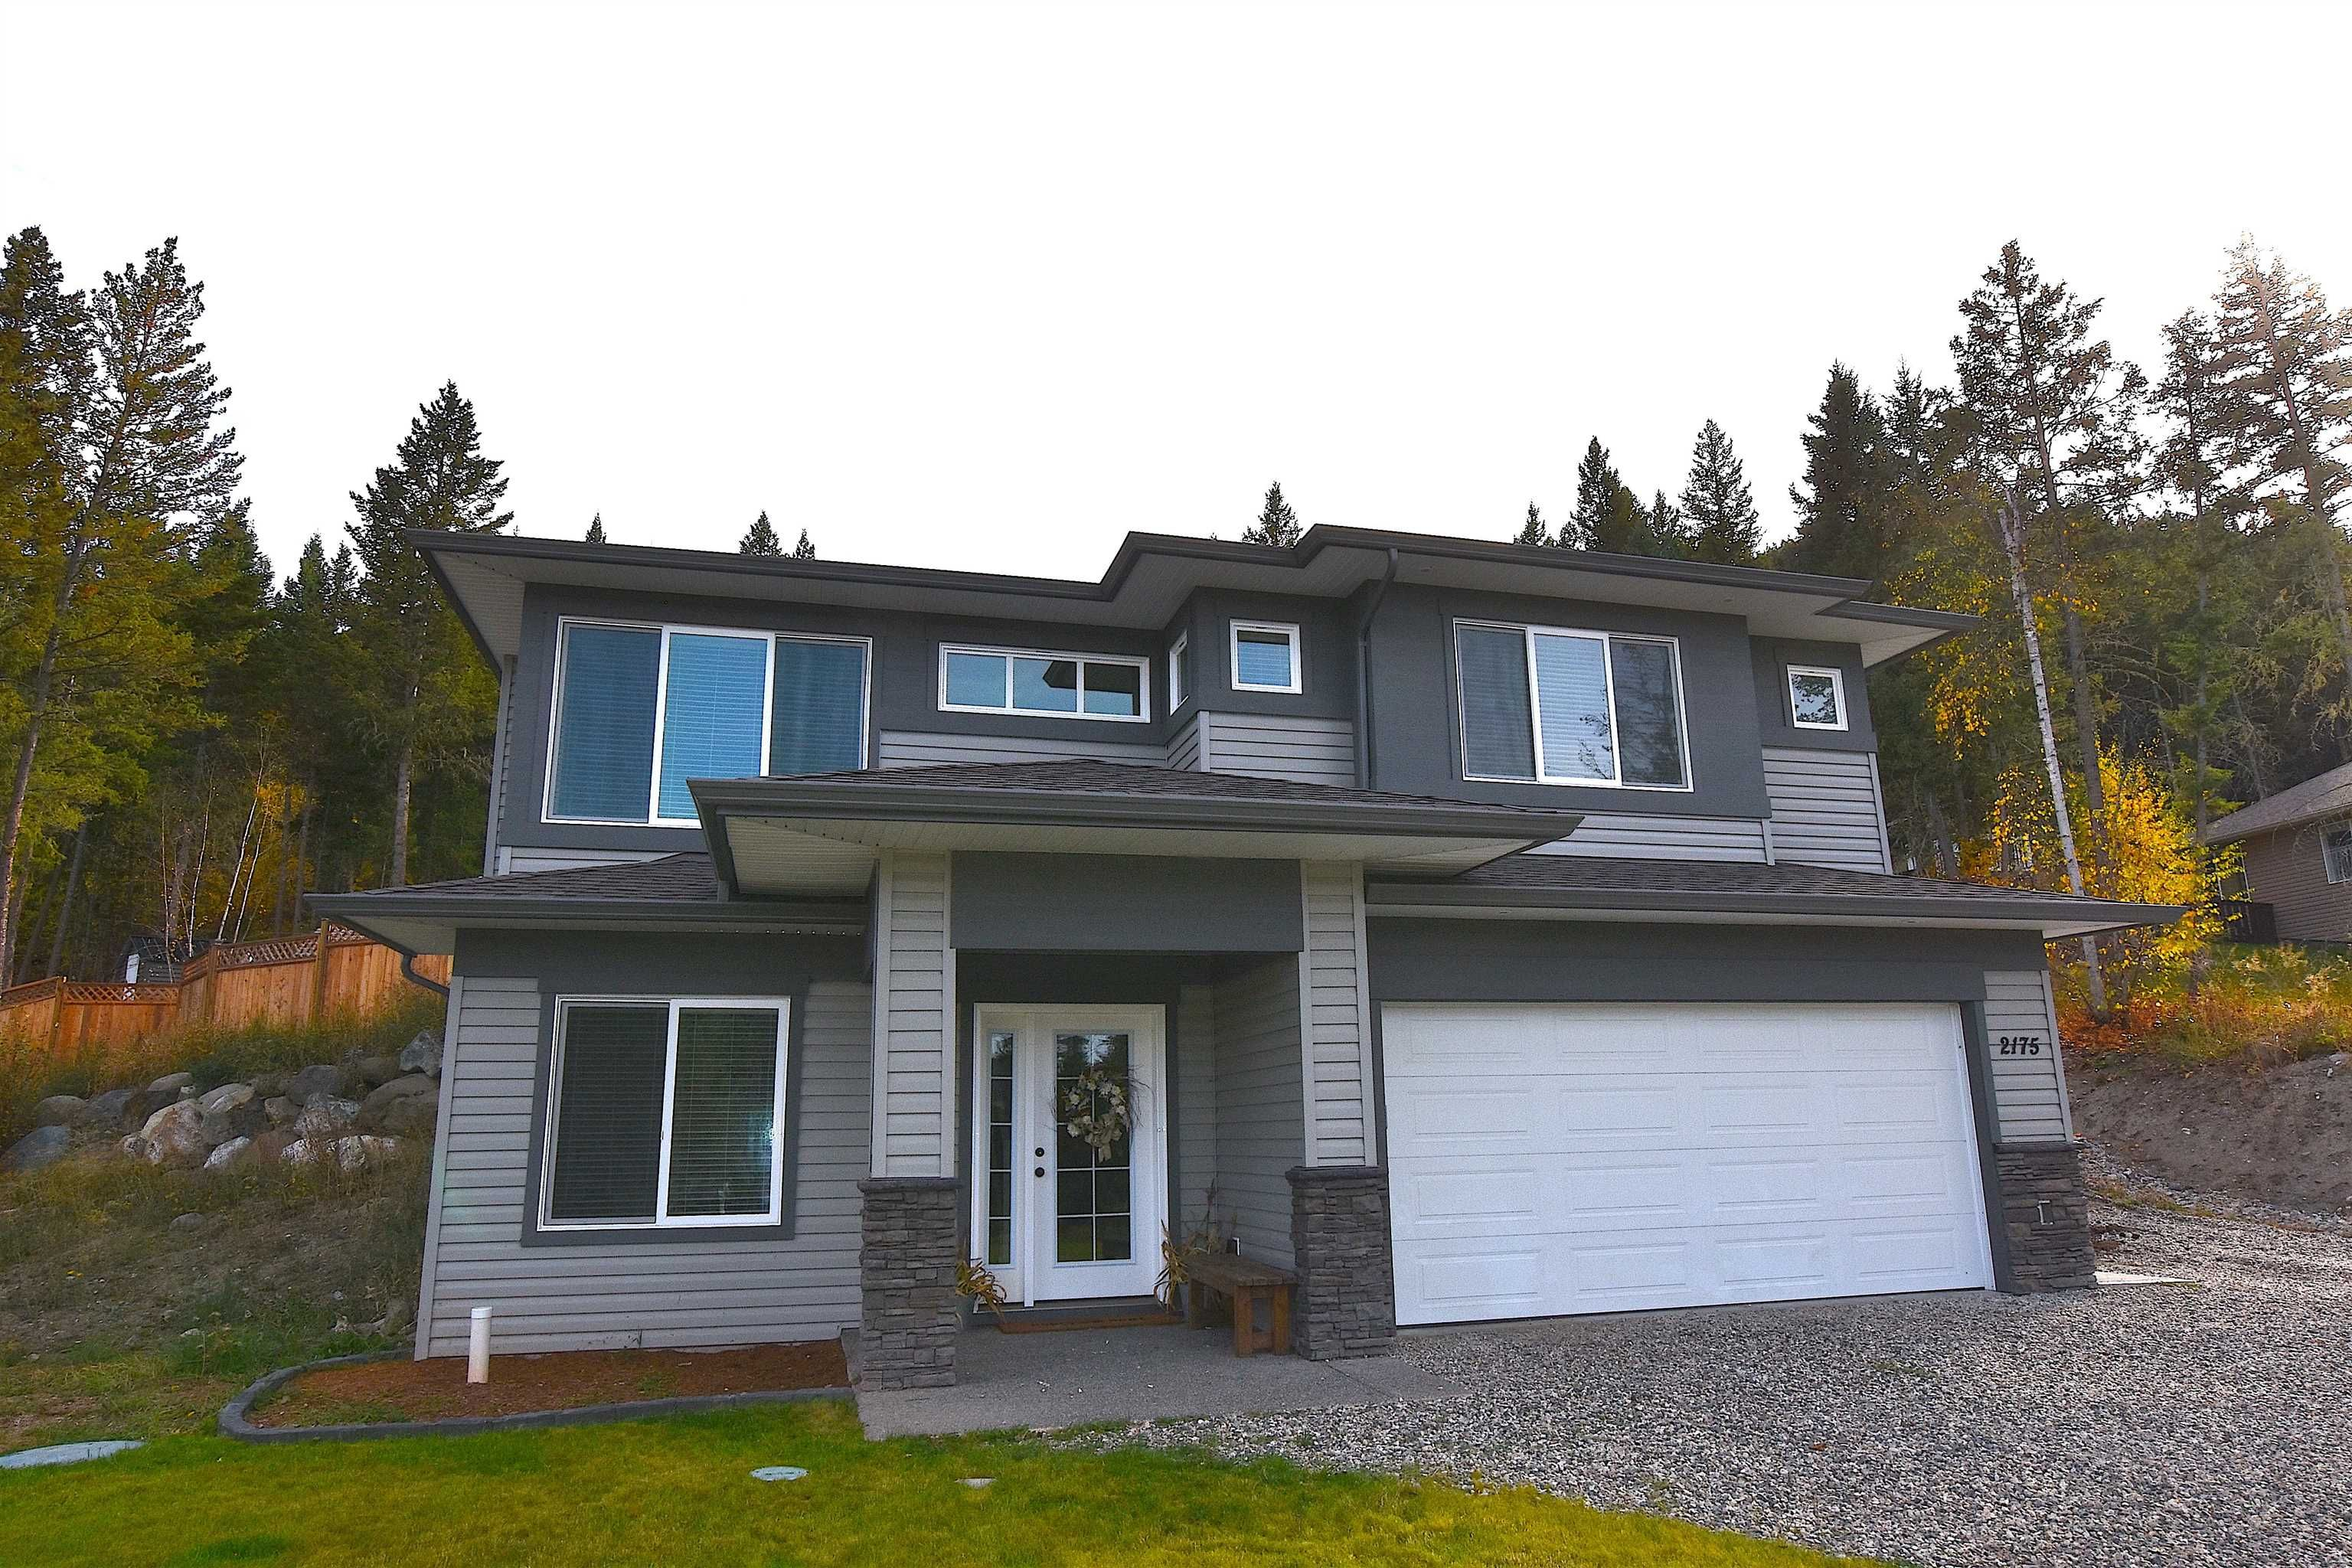 Main Photo: 2175 BLUFF VIEW Drive in Williams Lake: Lakeside Rural House for sale (Williams Lake (Zone 27))  : MLS®# R2623197